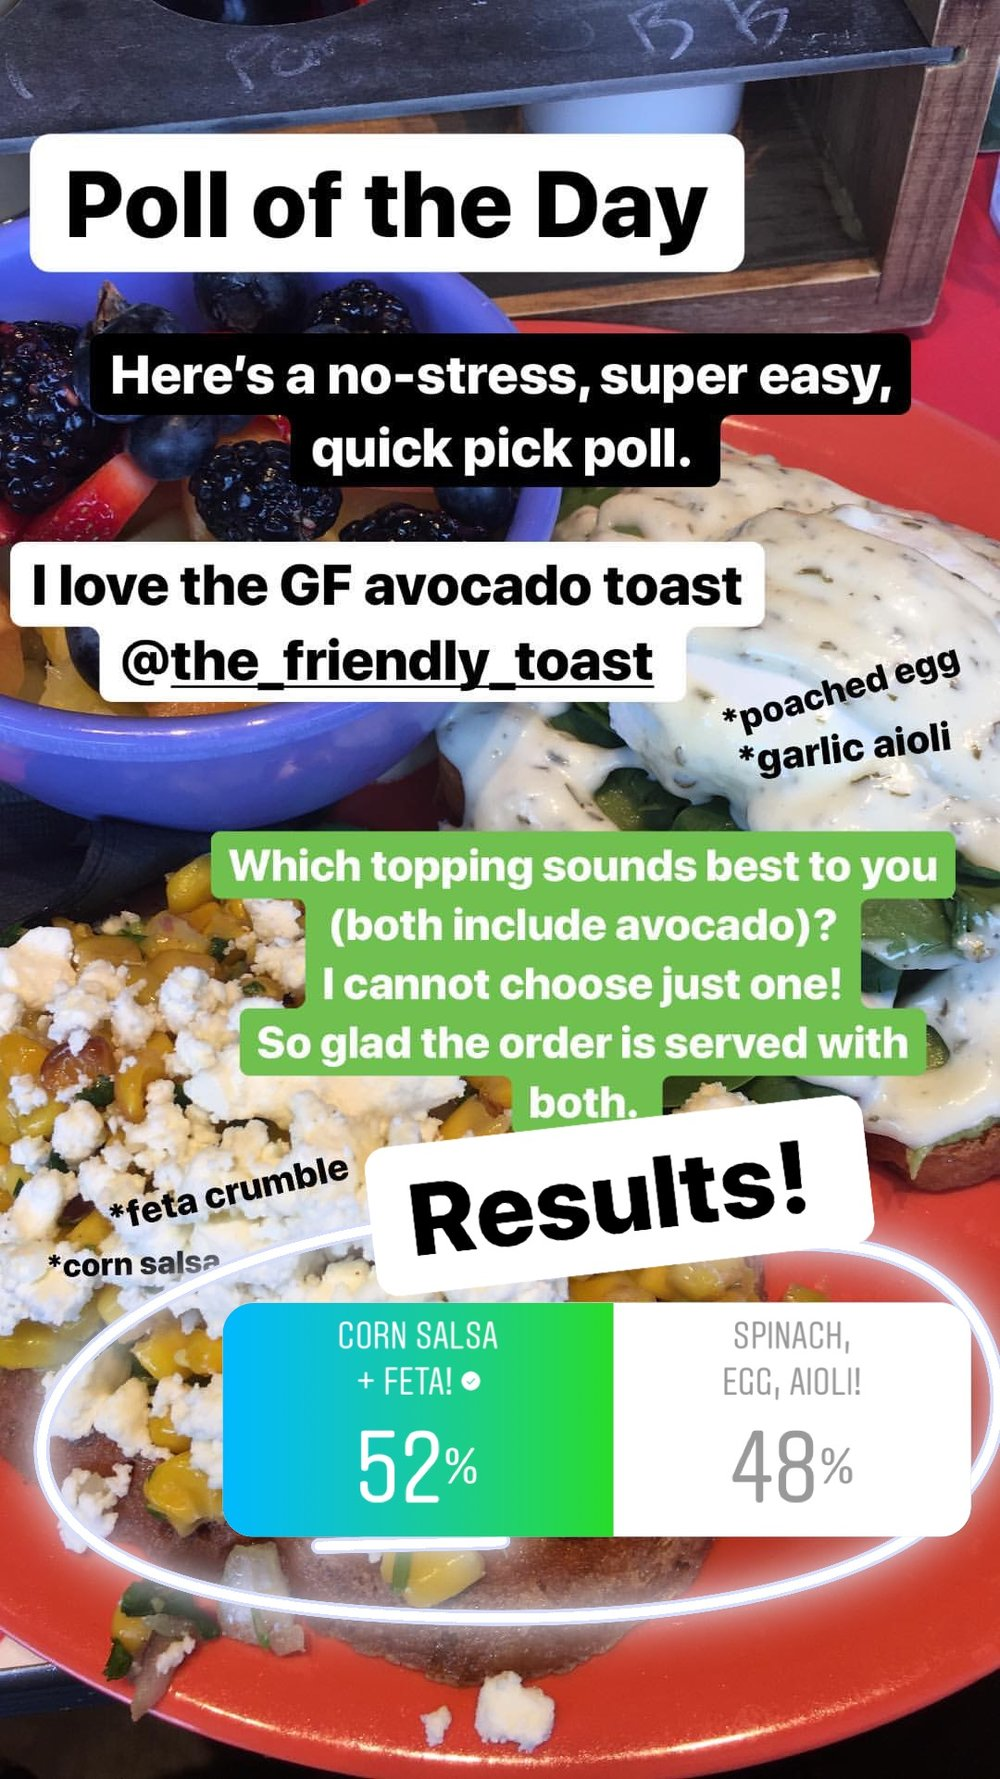 And corn salsa wins by one vote!! I was really impressed by the voting on this one as it was nearly tied the entire time! But right at the end, corn salsa and feta squeaked ahead with just a single extra vote to get the win. Now, as someone who has eaten both choices, I must say that both are delicious in their own right. And I have a hard time deciding which to eat, and finish, first when I enjoy it. But! They are both delicious and a fun way to enjoy the classic avocado toast, but majorly enhanced. If I had to pick one right this moment.... I have to say I'd pick.... 😬😬 Both!